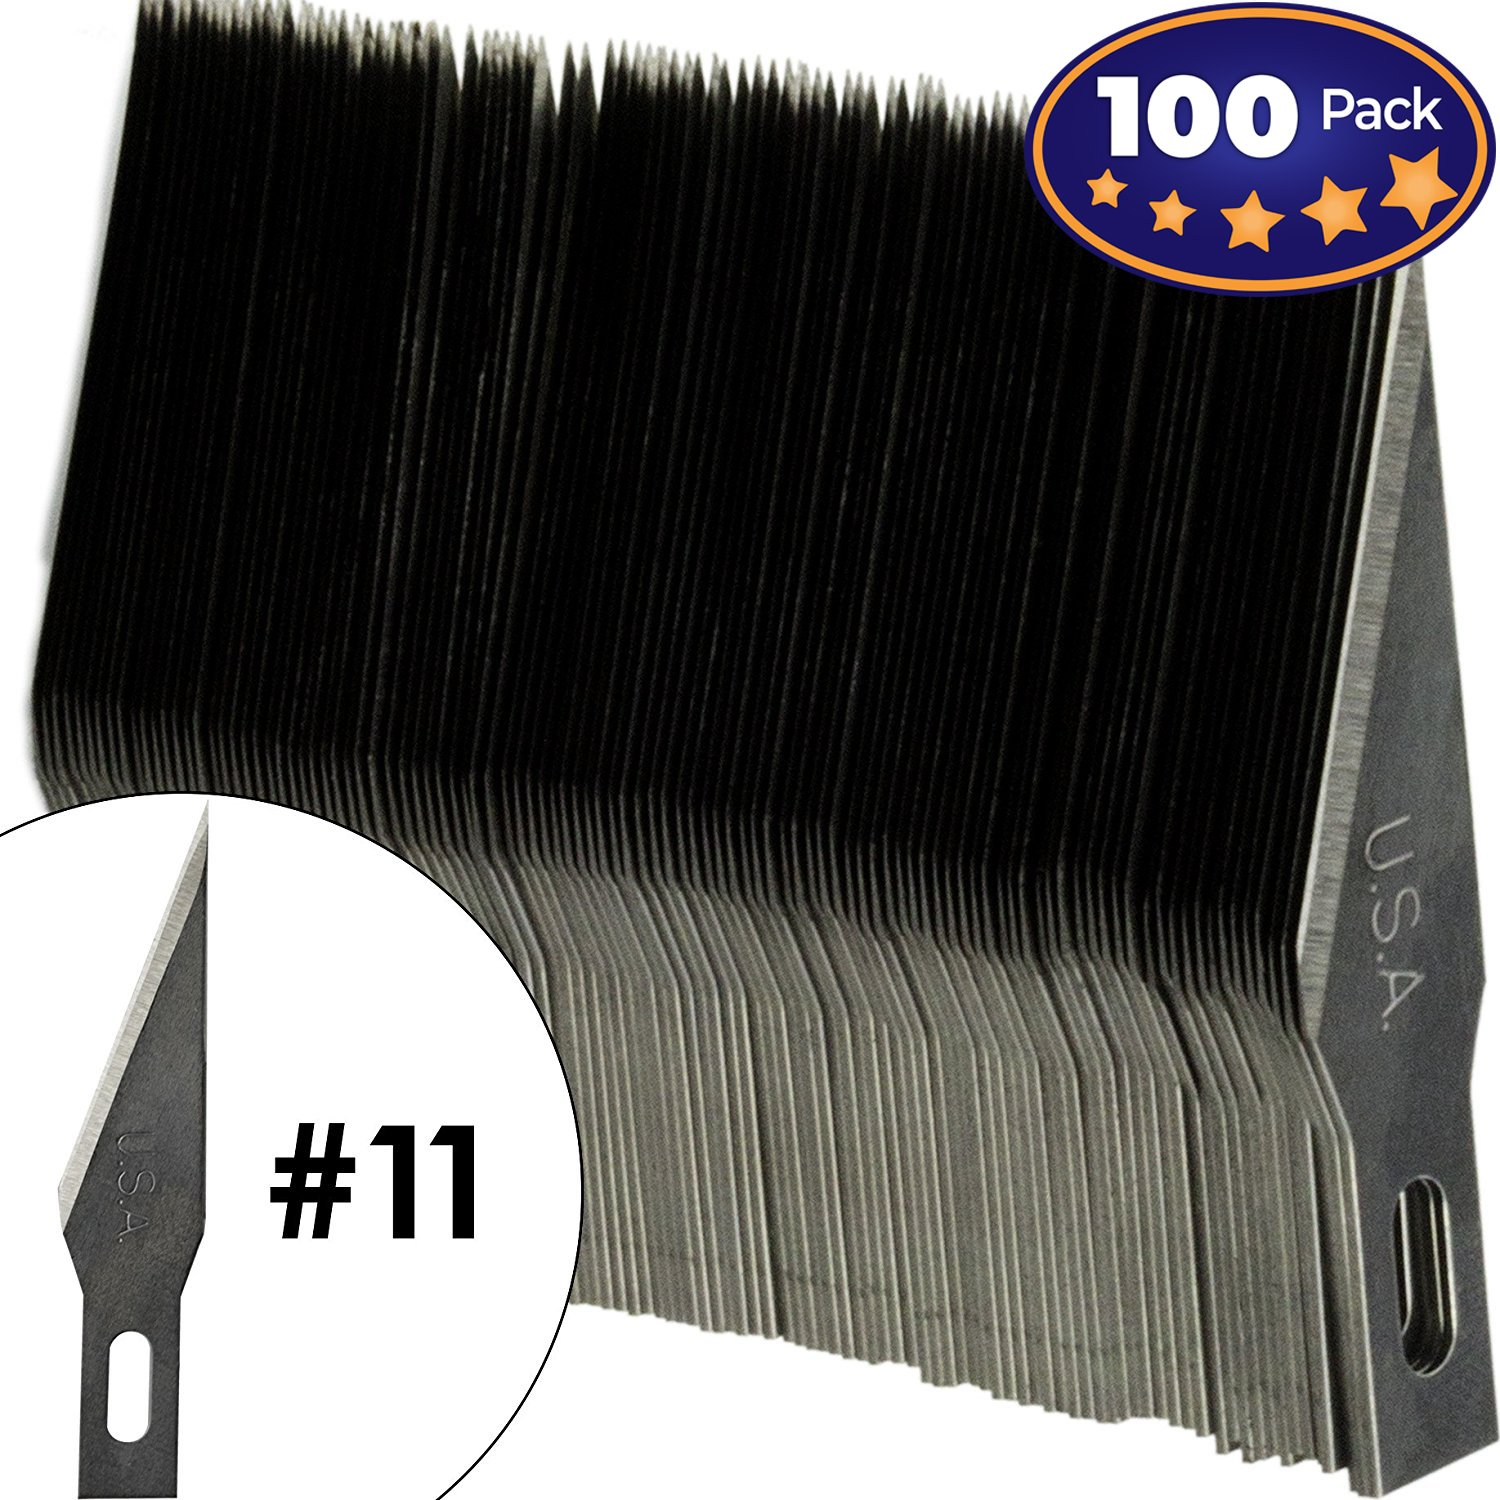 Premium USA-Made Steel Hobby Knife Blades Mega Bulk 100 Pack. Save Time and Shipping Costs! The Fine Point #11 Size Blade Universally Fits #1 Craft Knife Handles for Modeling and Papercraft Projects